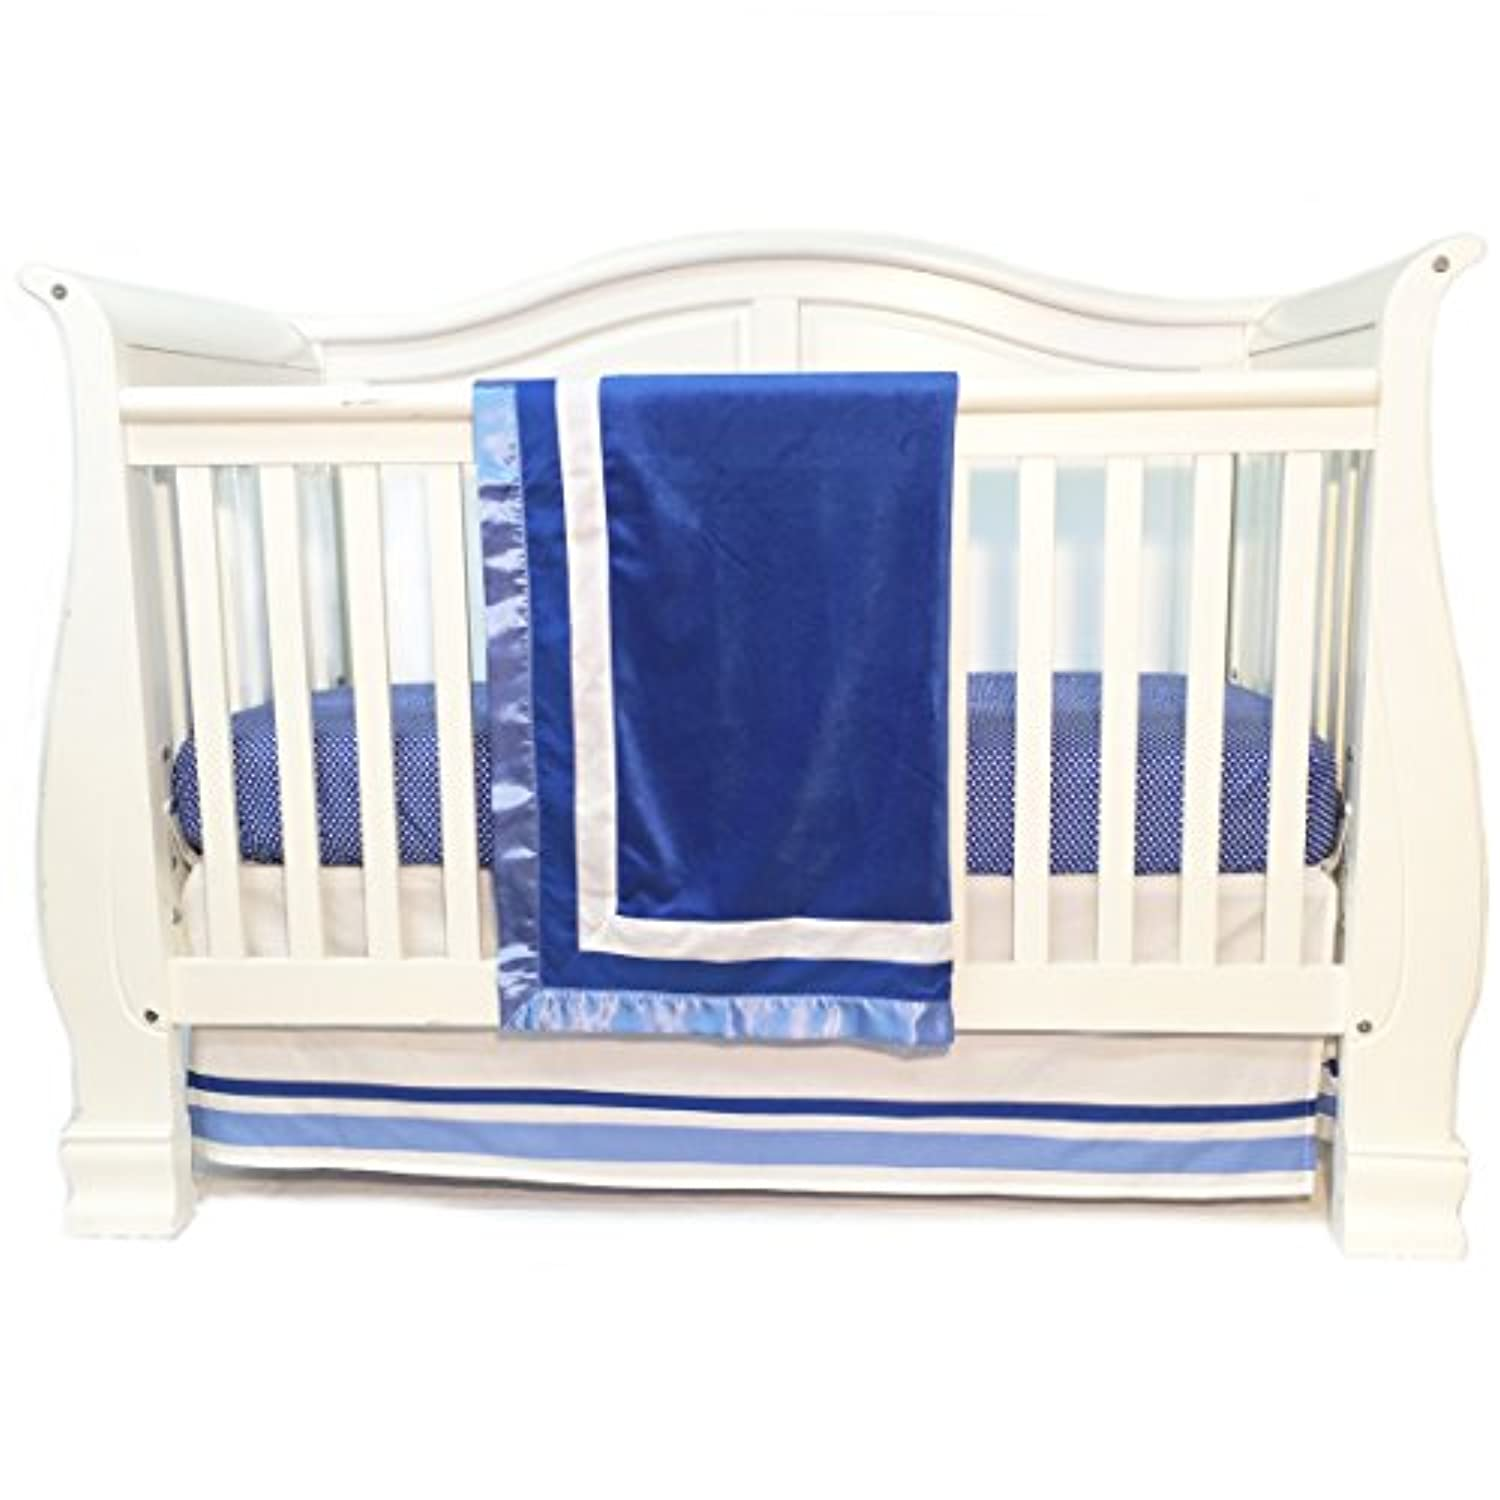 One Grace Place Simplicity Blue Infant Crib Bedding Set, Blue/White by One Grace Place